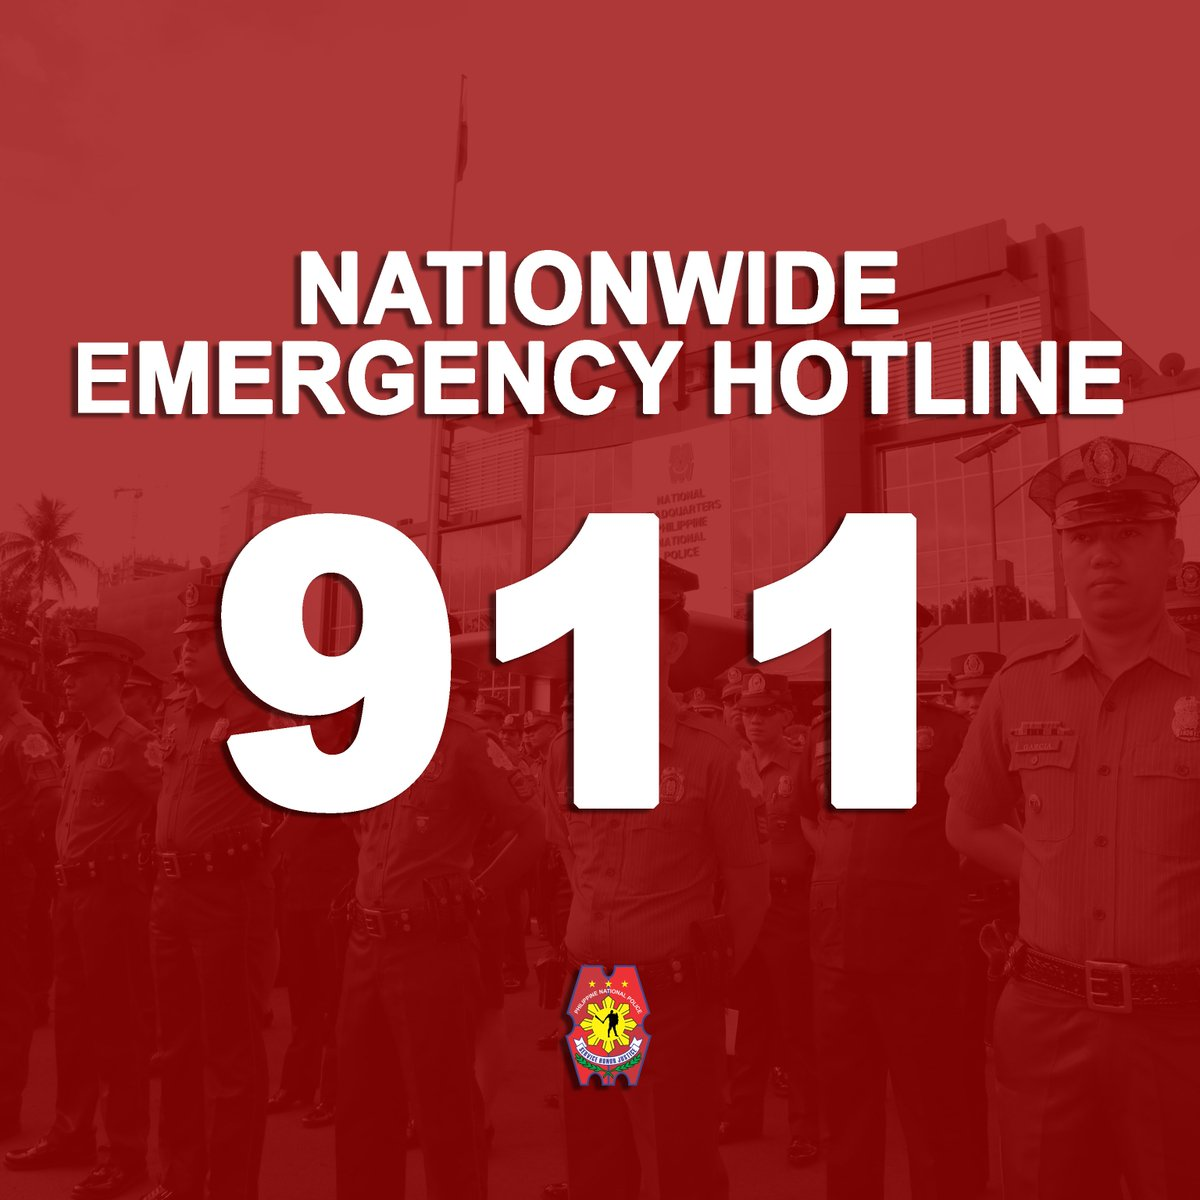 Any information may be reported thru the nationwide emergency hotline 911 for immediate police assistance. https://t.co/QQVynWsXxA